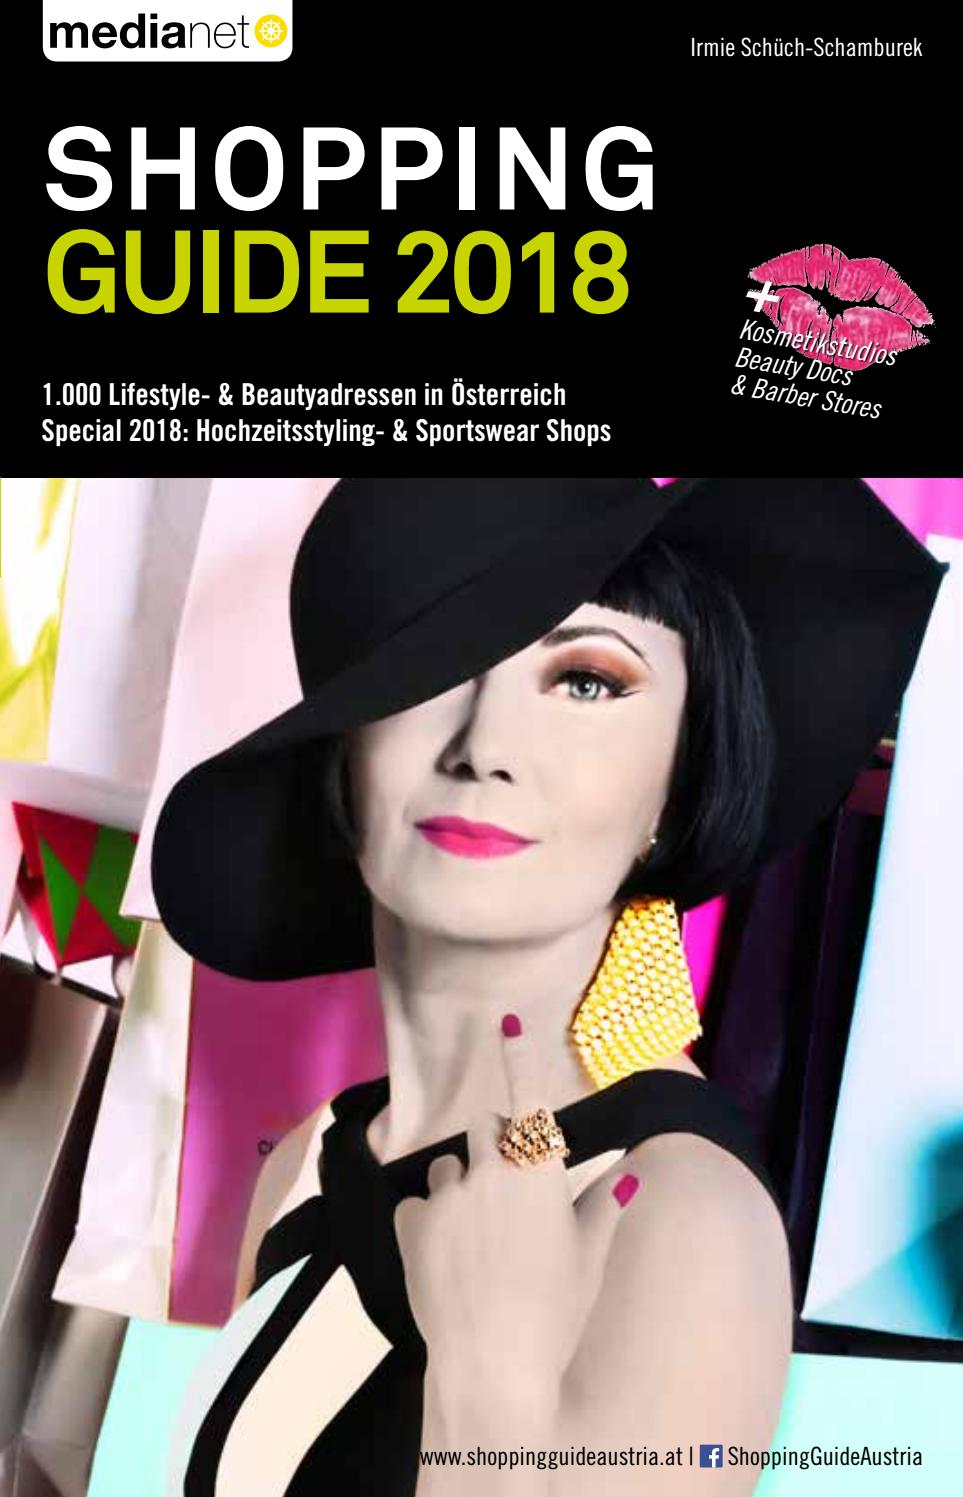 Shopping Guide 2018 By Medianet Issuu